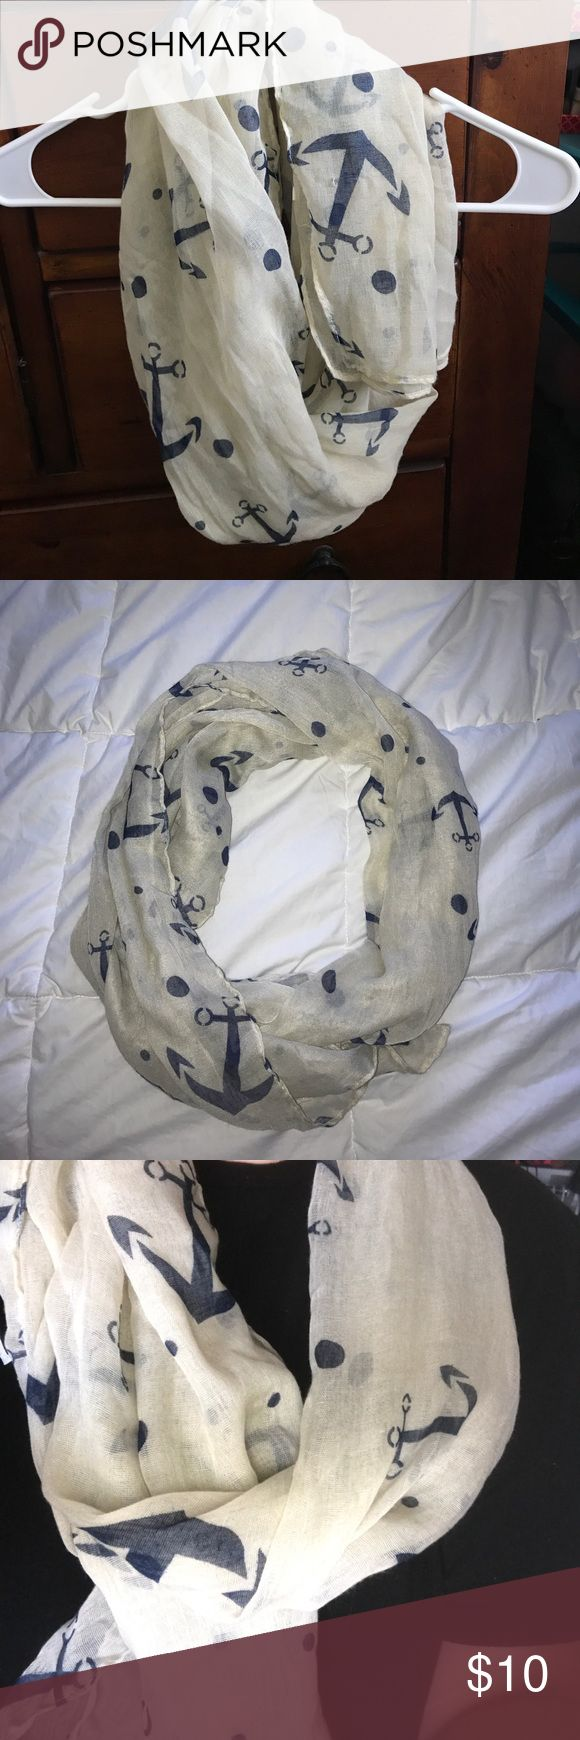 Cream and blue anchor scarf This tan/creamy anchor scarf has polka dots and can be worn many different ways!! It is NOT an infinity scarf.  This is new and only worn once.  I originally bought it just because I went through an anchor phase and wanted it but never wore it! It is in perfect condition! Accessories Scarves & Wraps